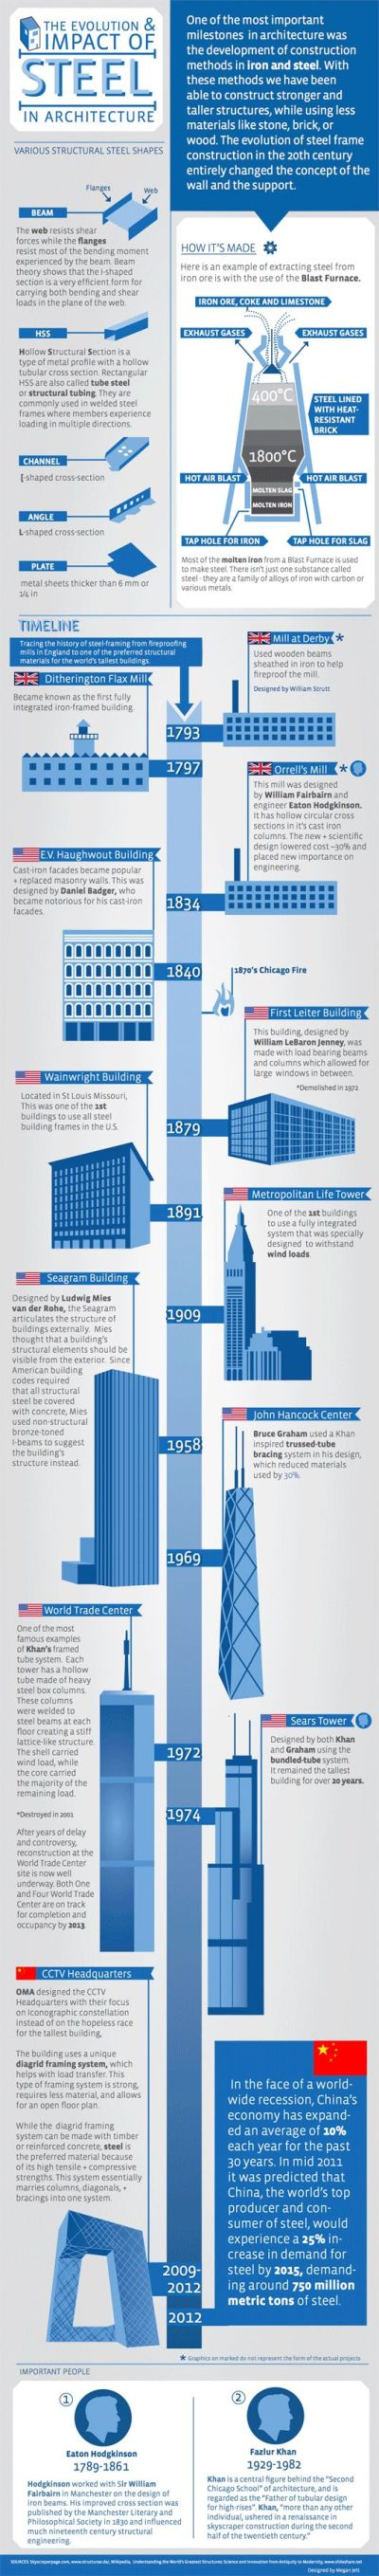 15 best images about Construction Infographics on Pinterest